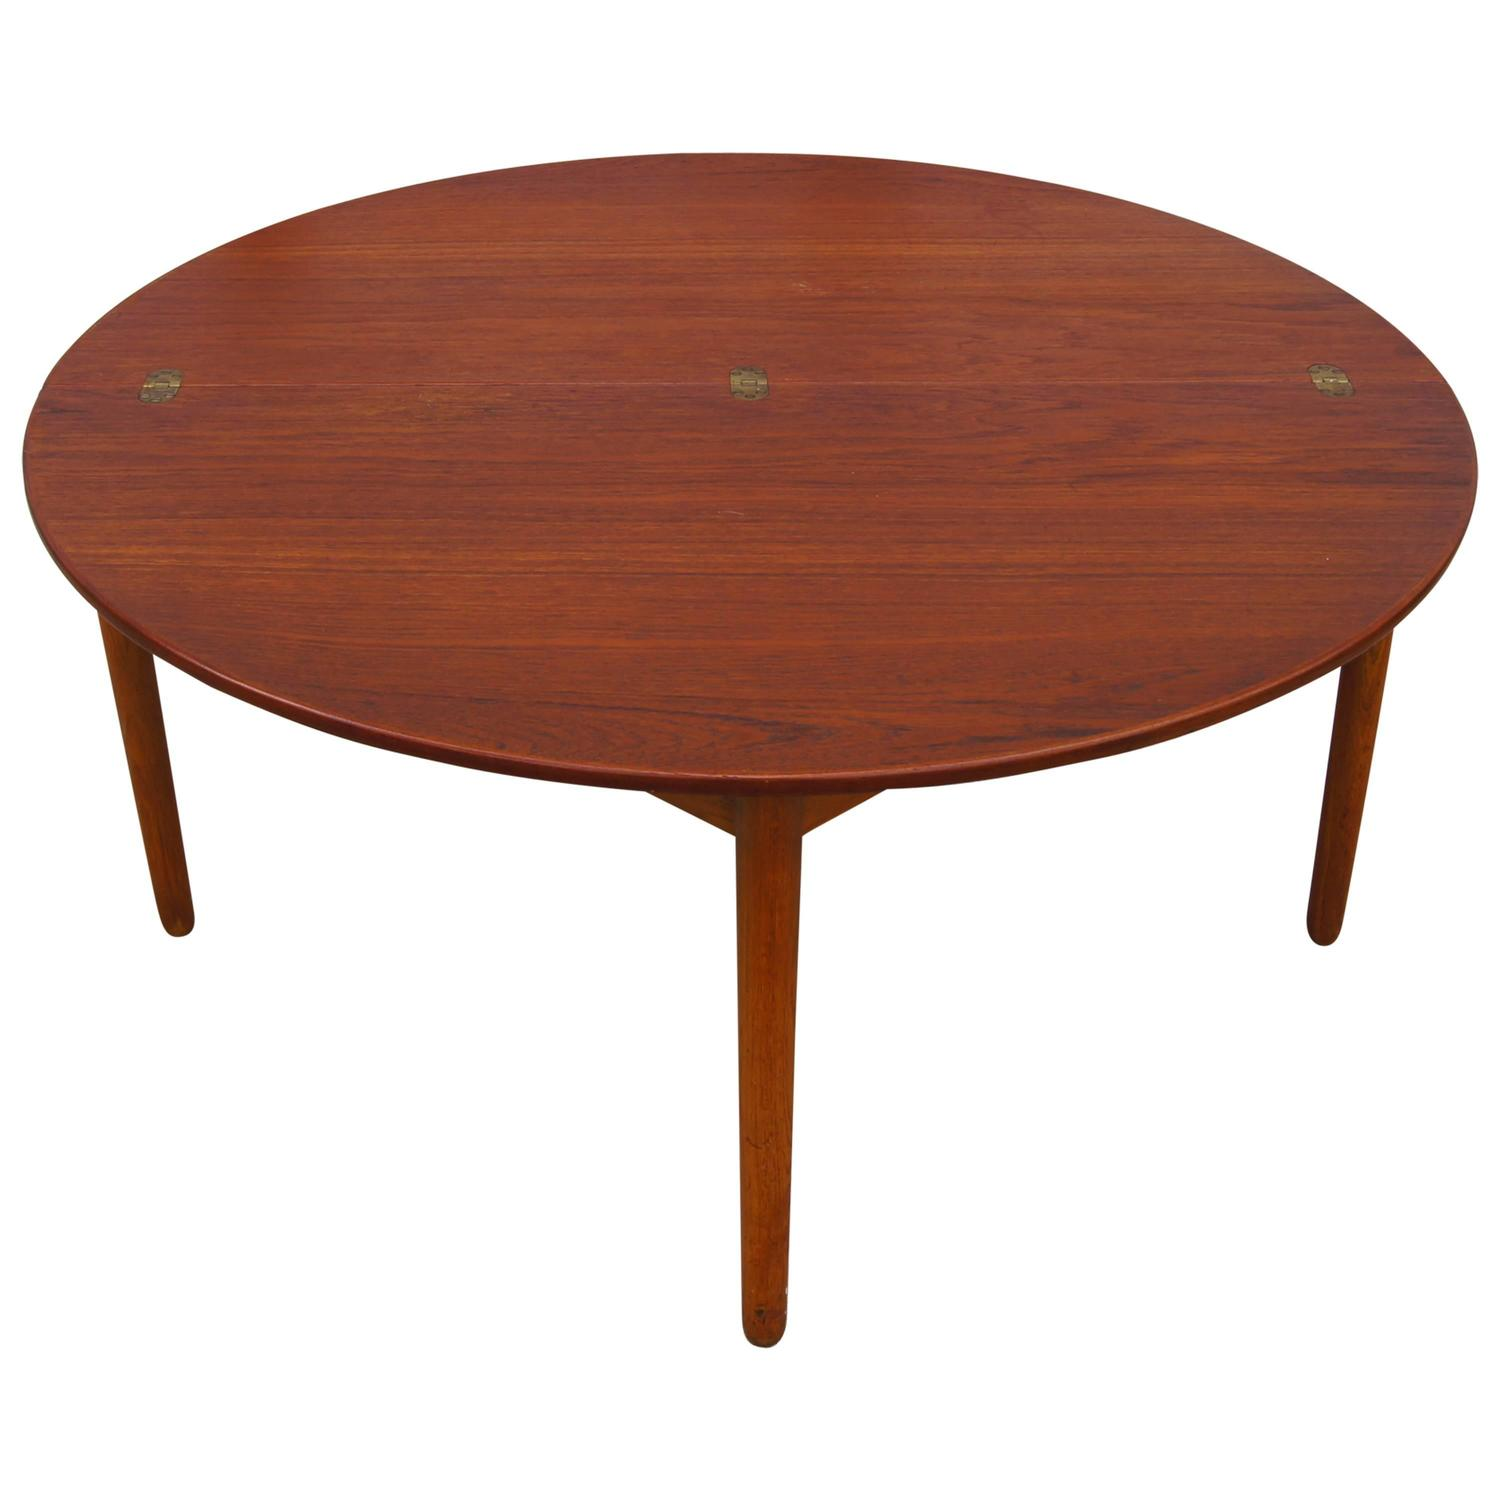 Teak folding coffee table by poul volther for frem rojle for sale at 1stdibs Folding coffee table